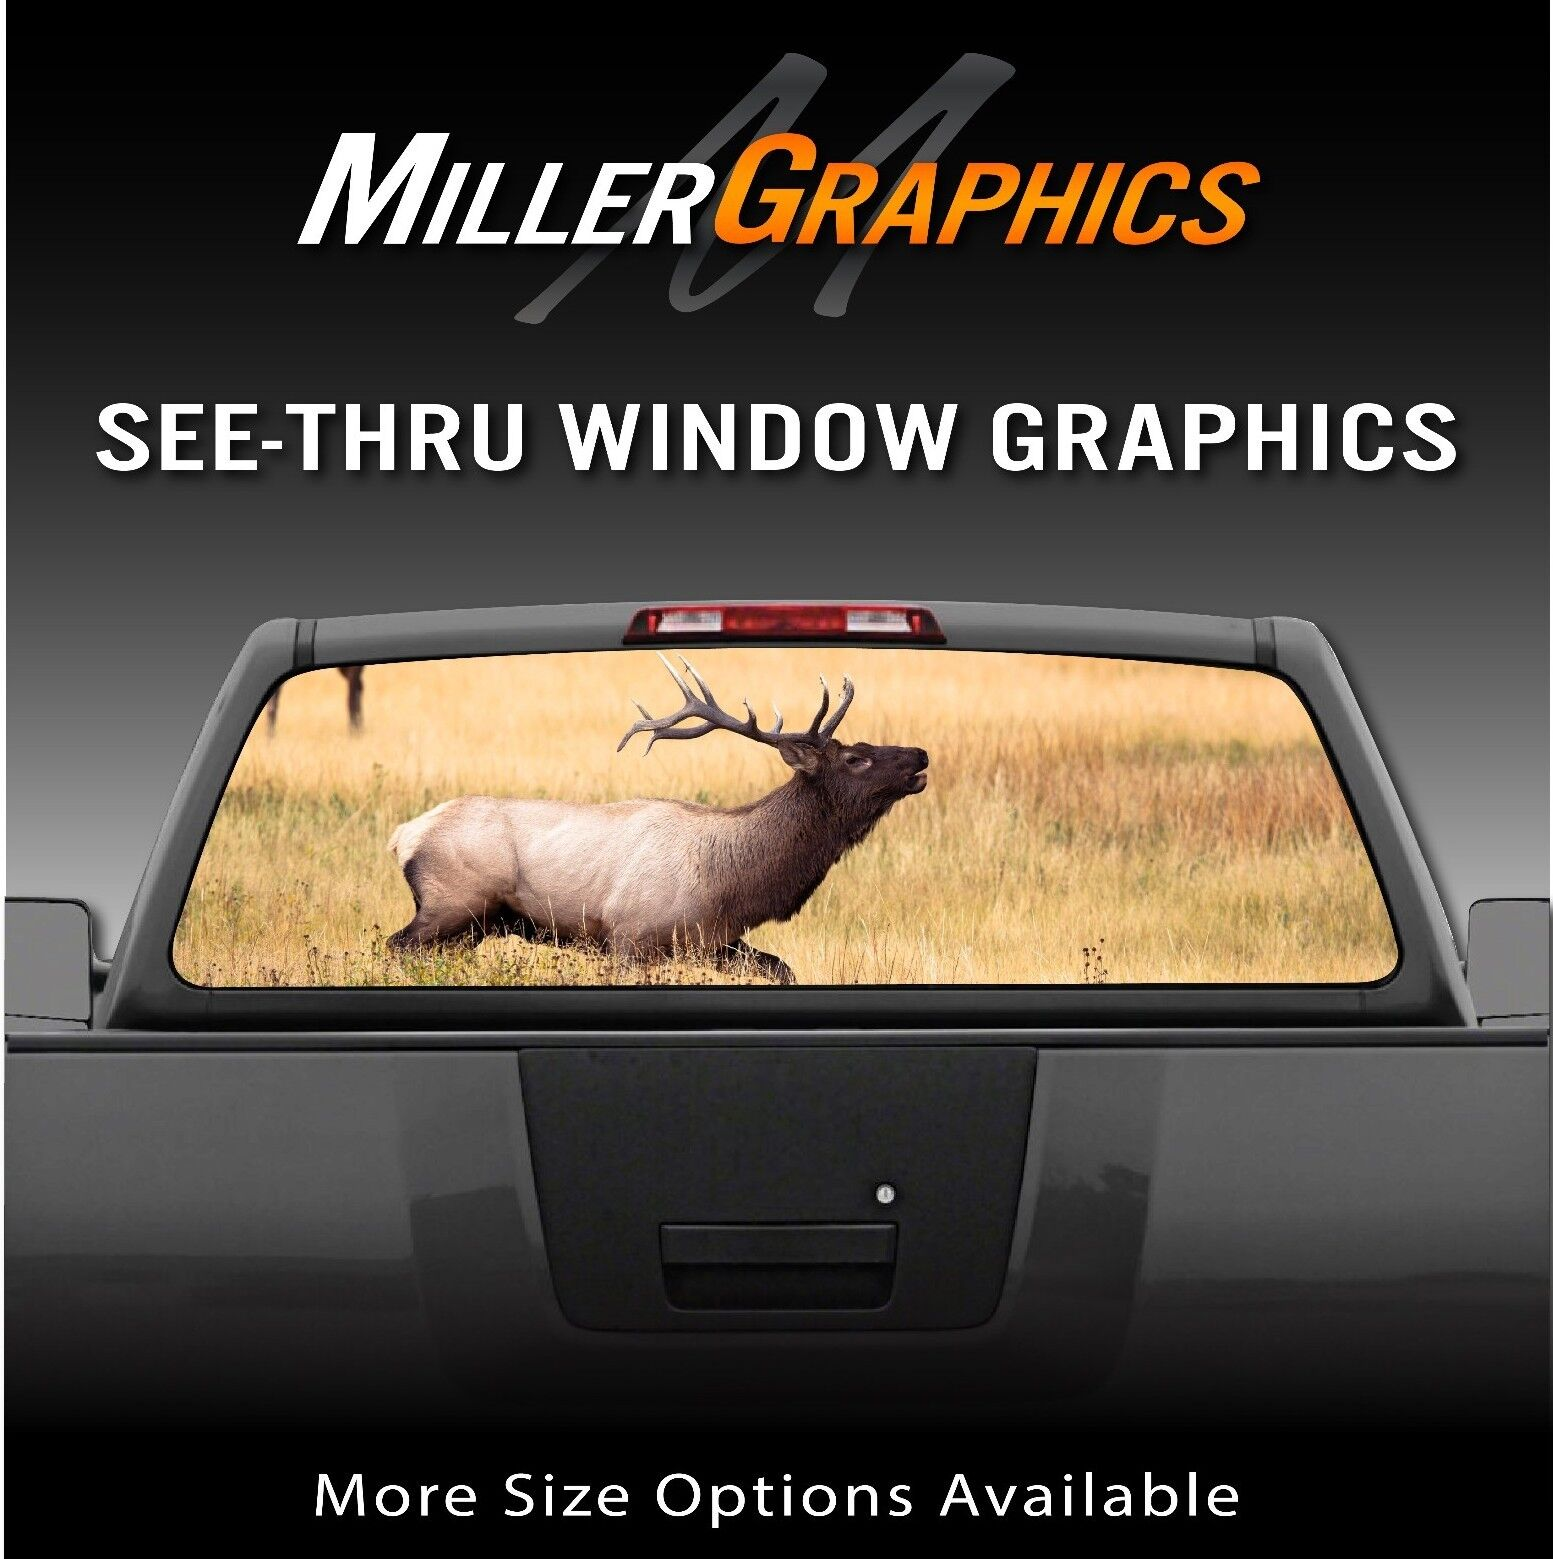 Buck elk field hunting rear window decal graphic for truck suv item description see thru